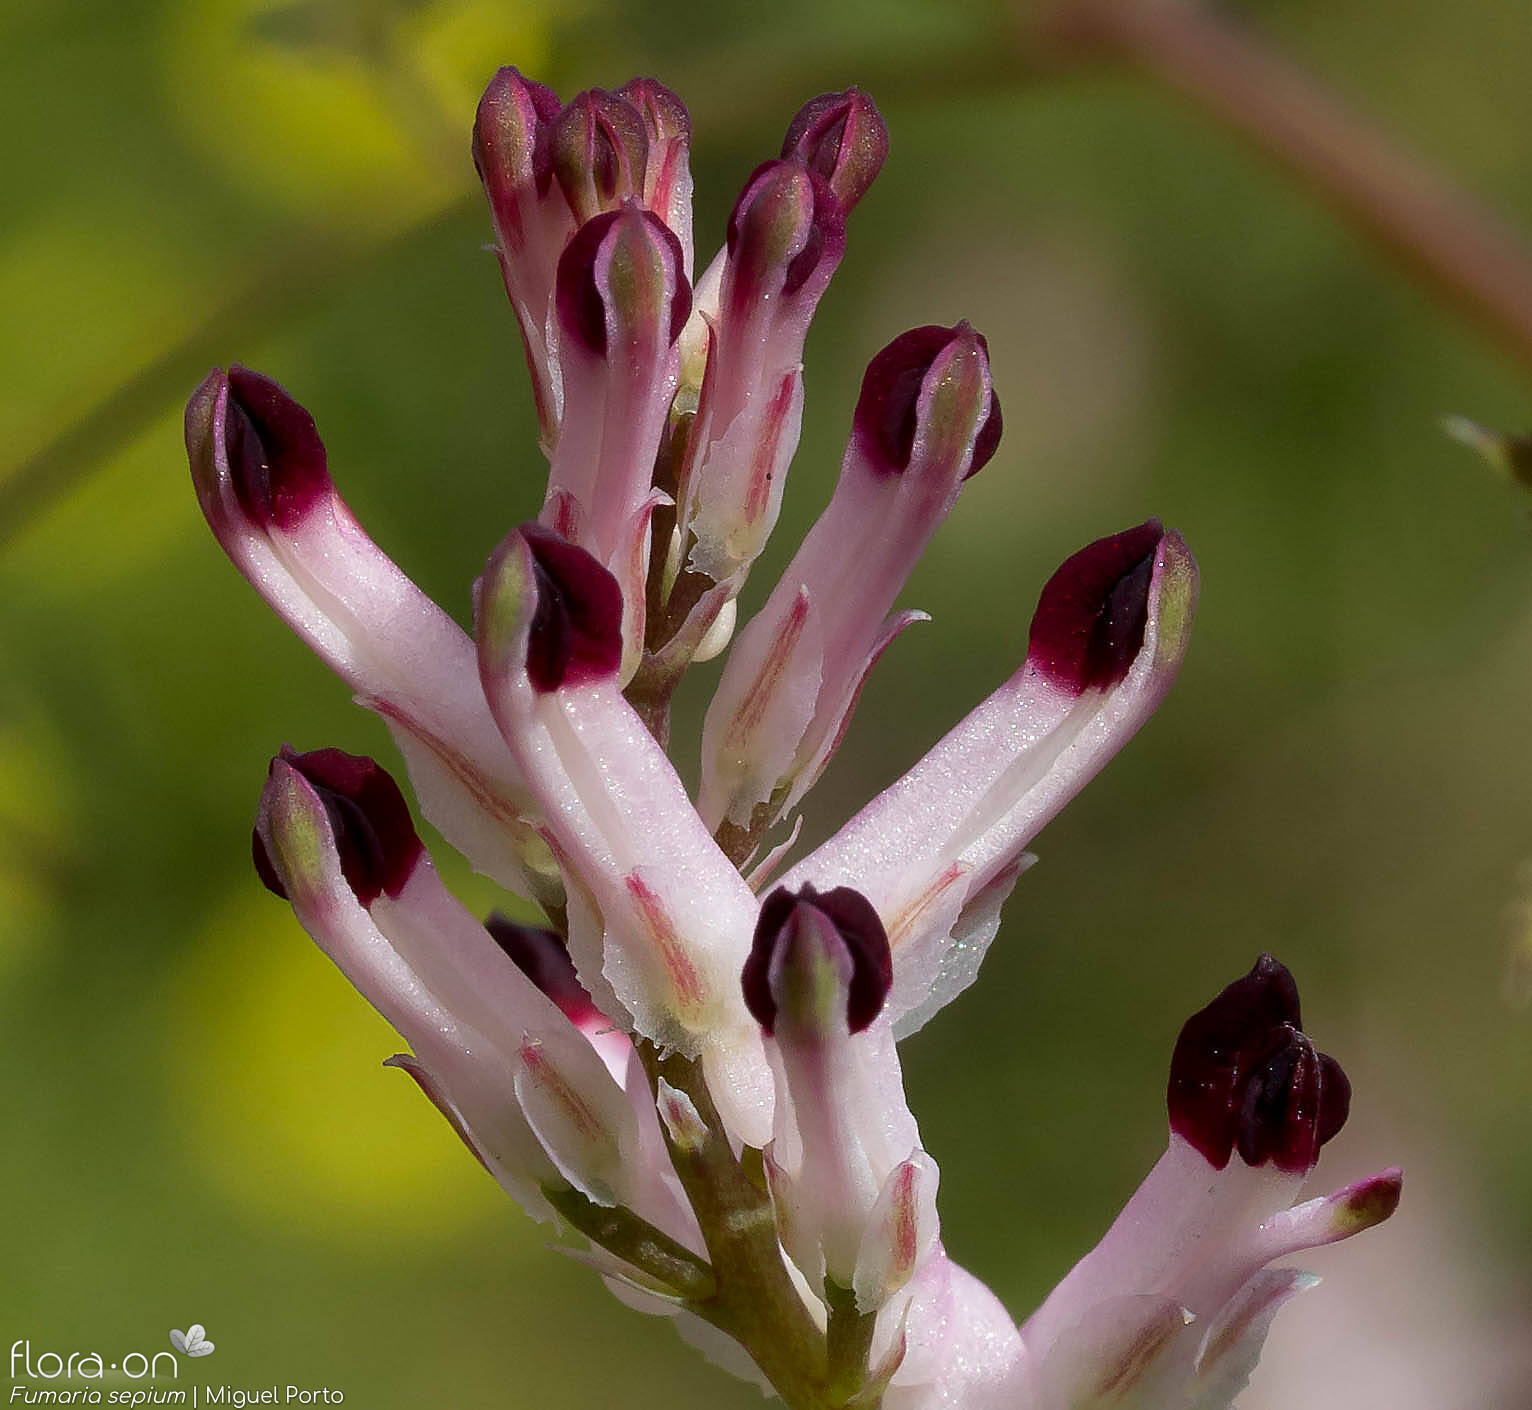 Fumaria sepium - Flor (close-up) | Miguel Porto; CC BY-NC 4.0